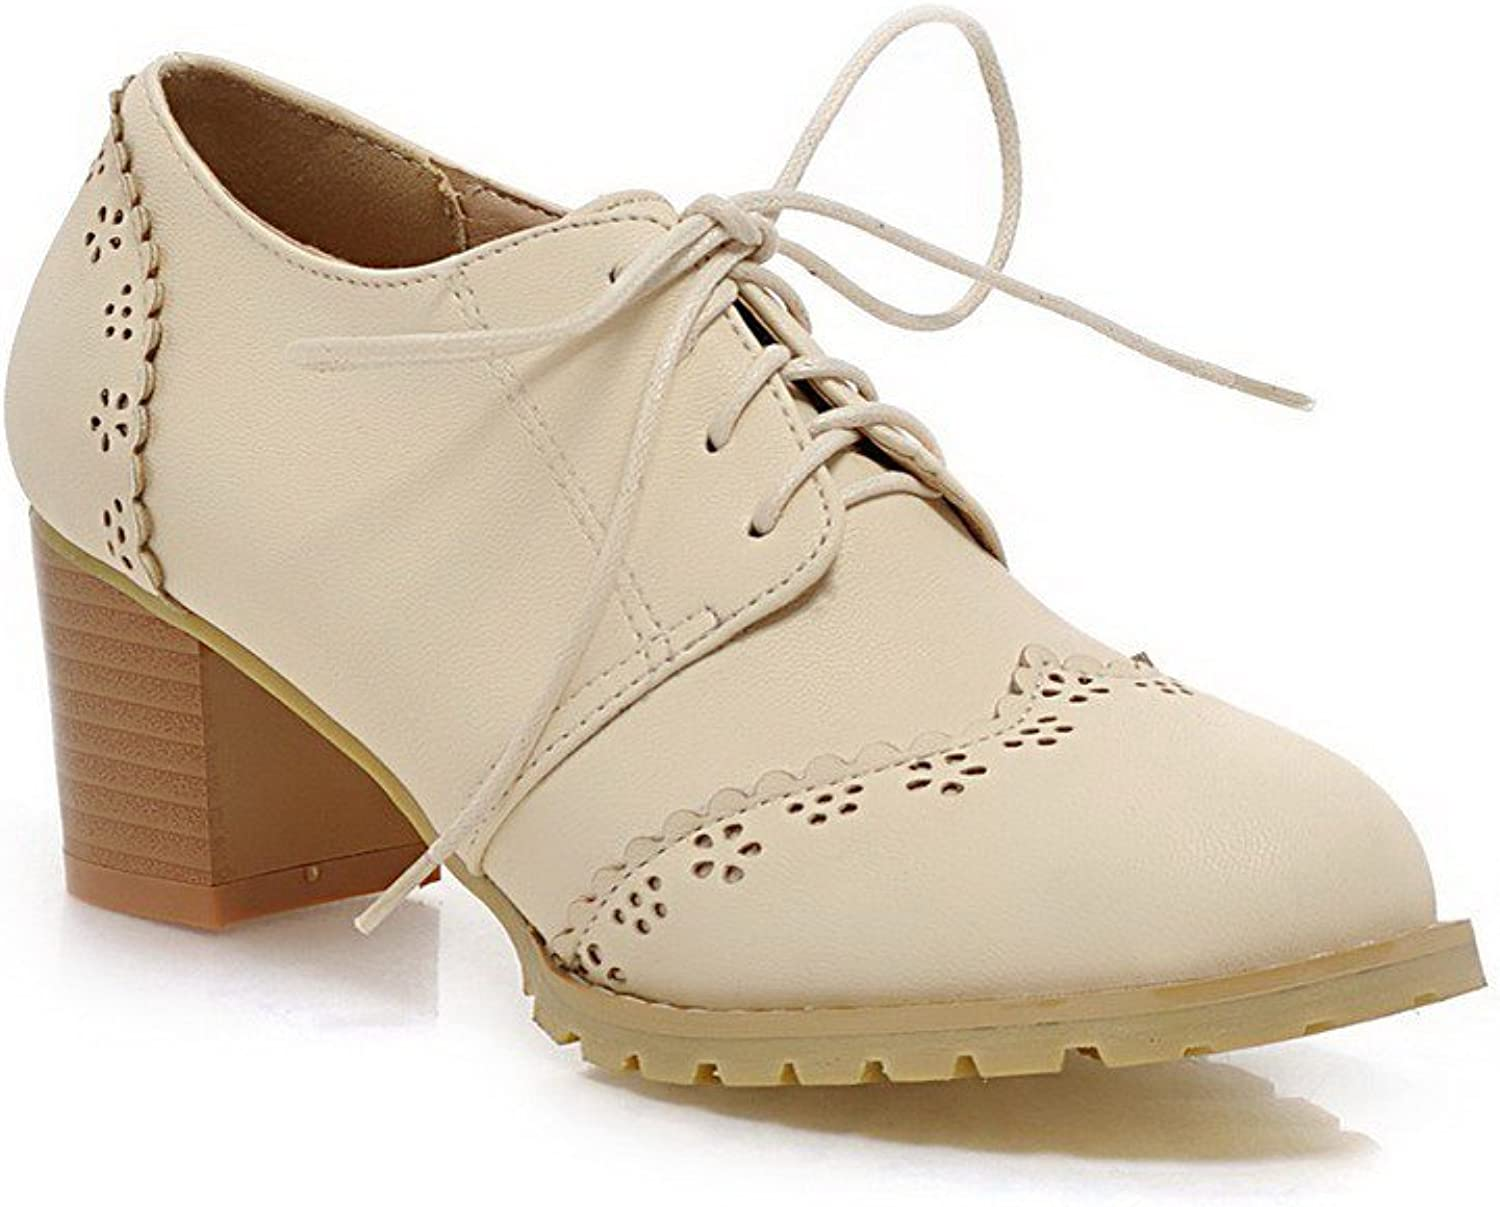 WeiPoot Women's Solid Soft Material Kitten-Heels Lace-up Round Closed Toe Pumps-shoes